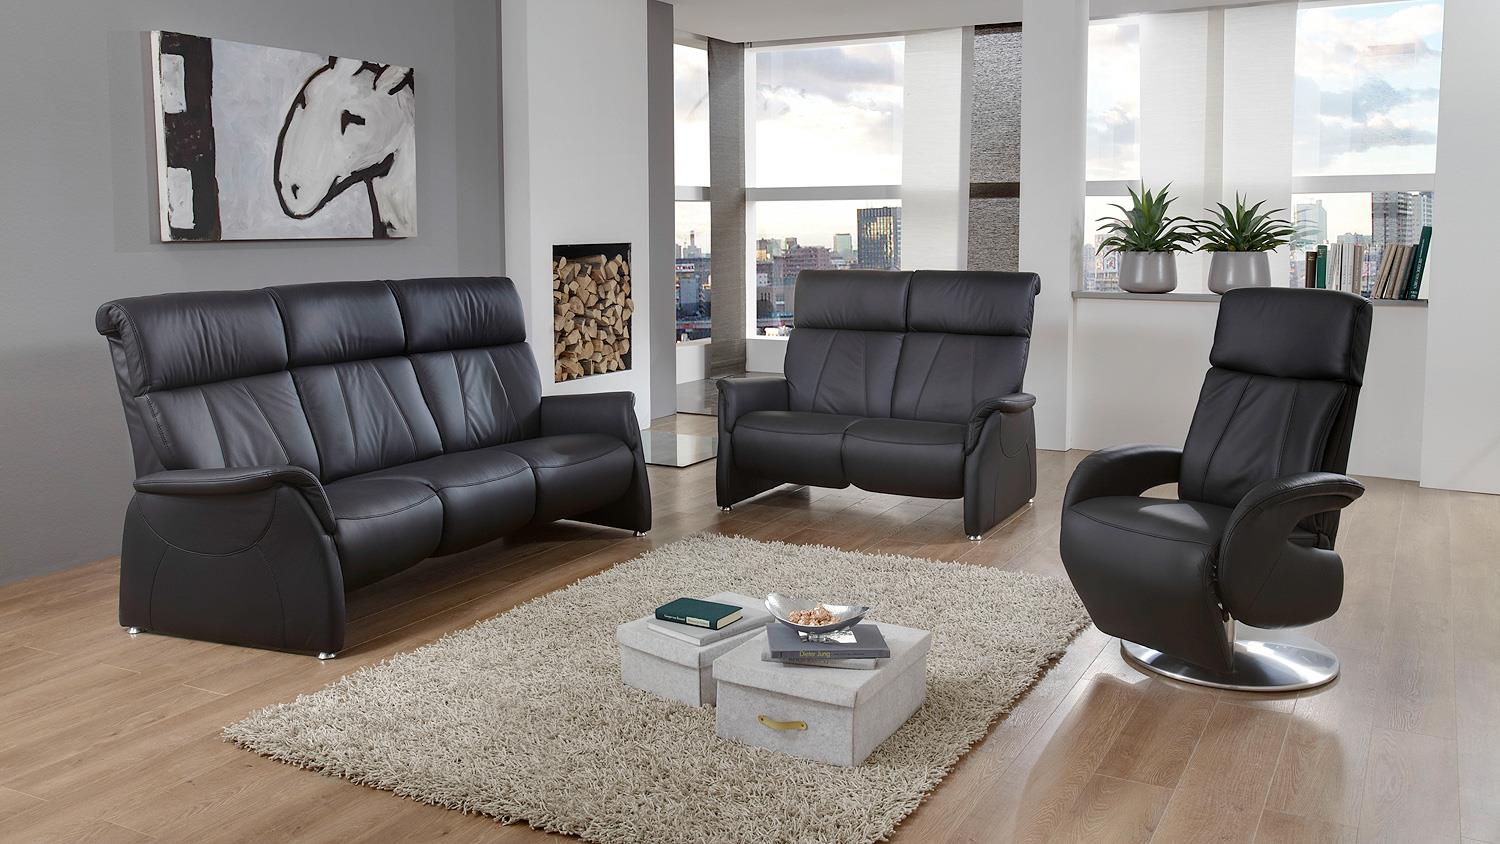 sofa magic relaxx 2 sitzer echtleder schwarz nosagfederung. Black Bedroom Furniture Sets. Home Design Ideas